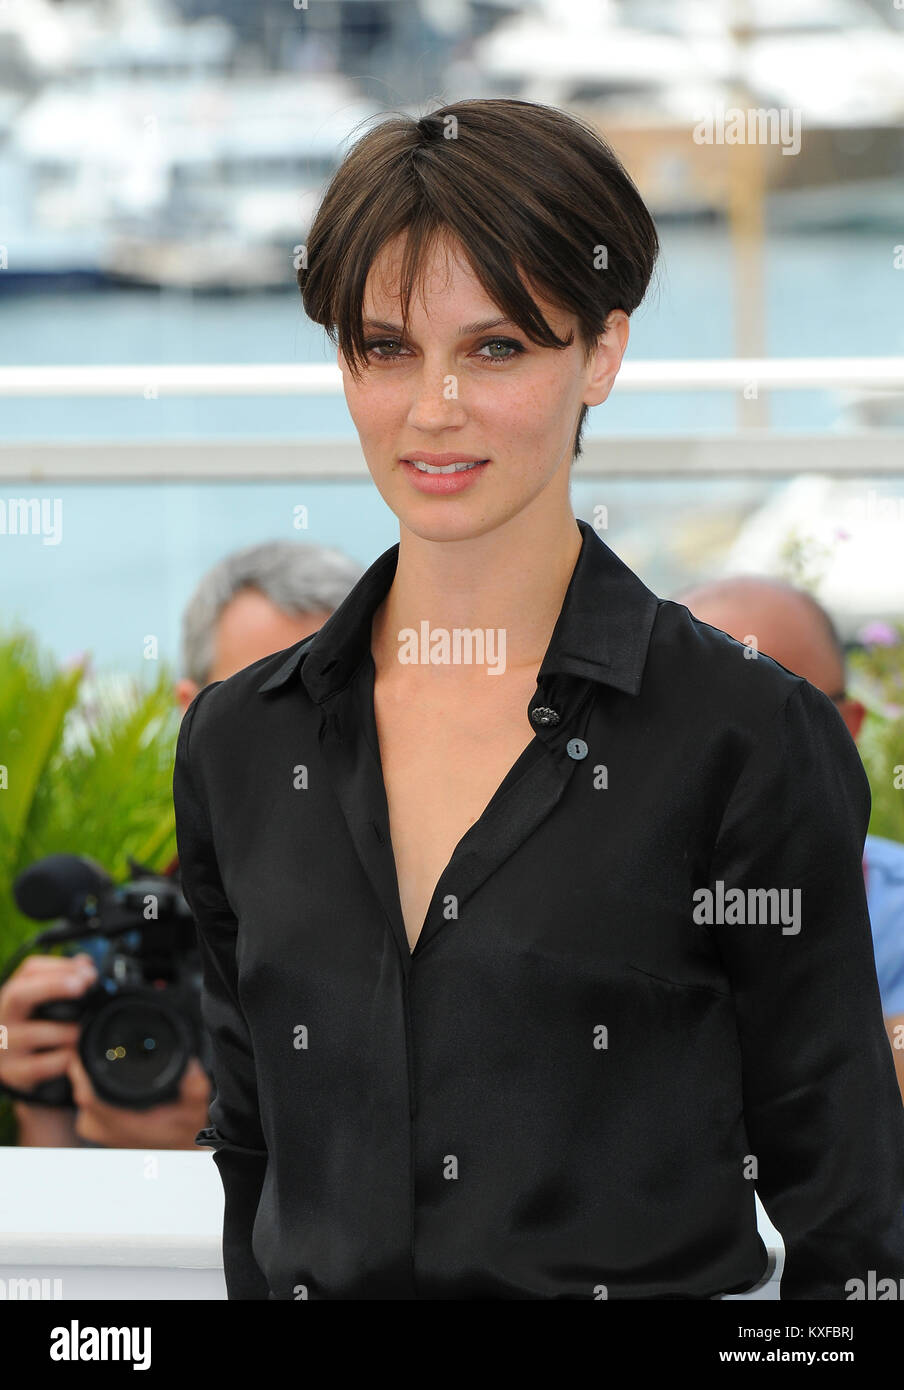 Marine Vacth co star died